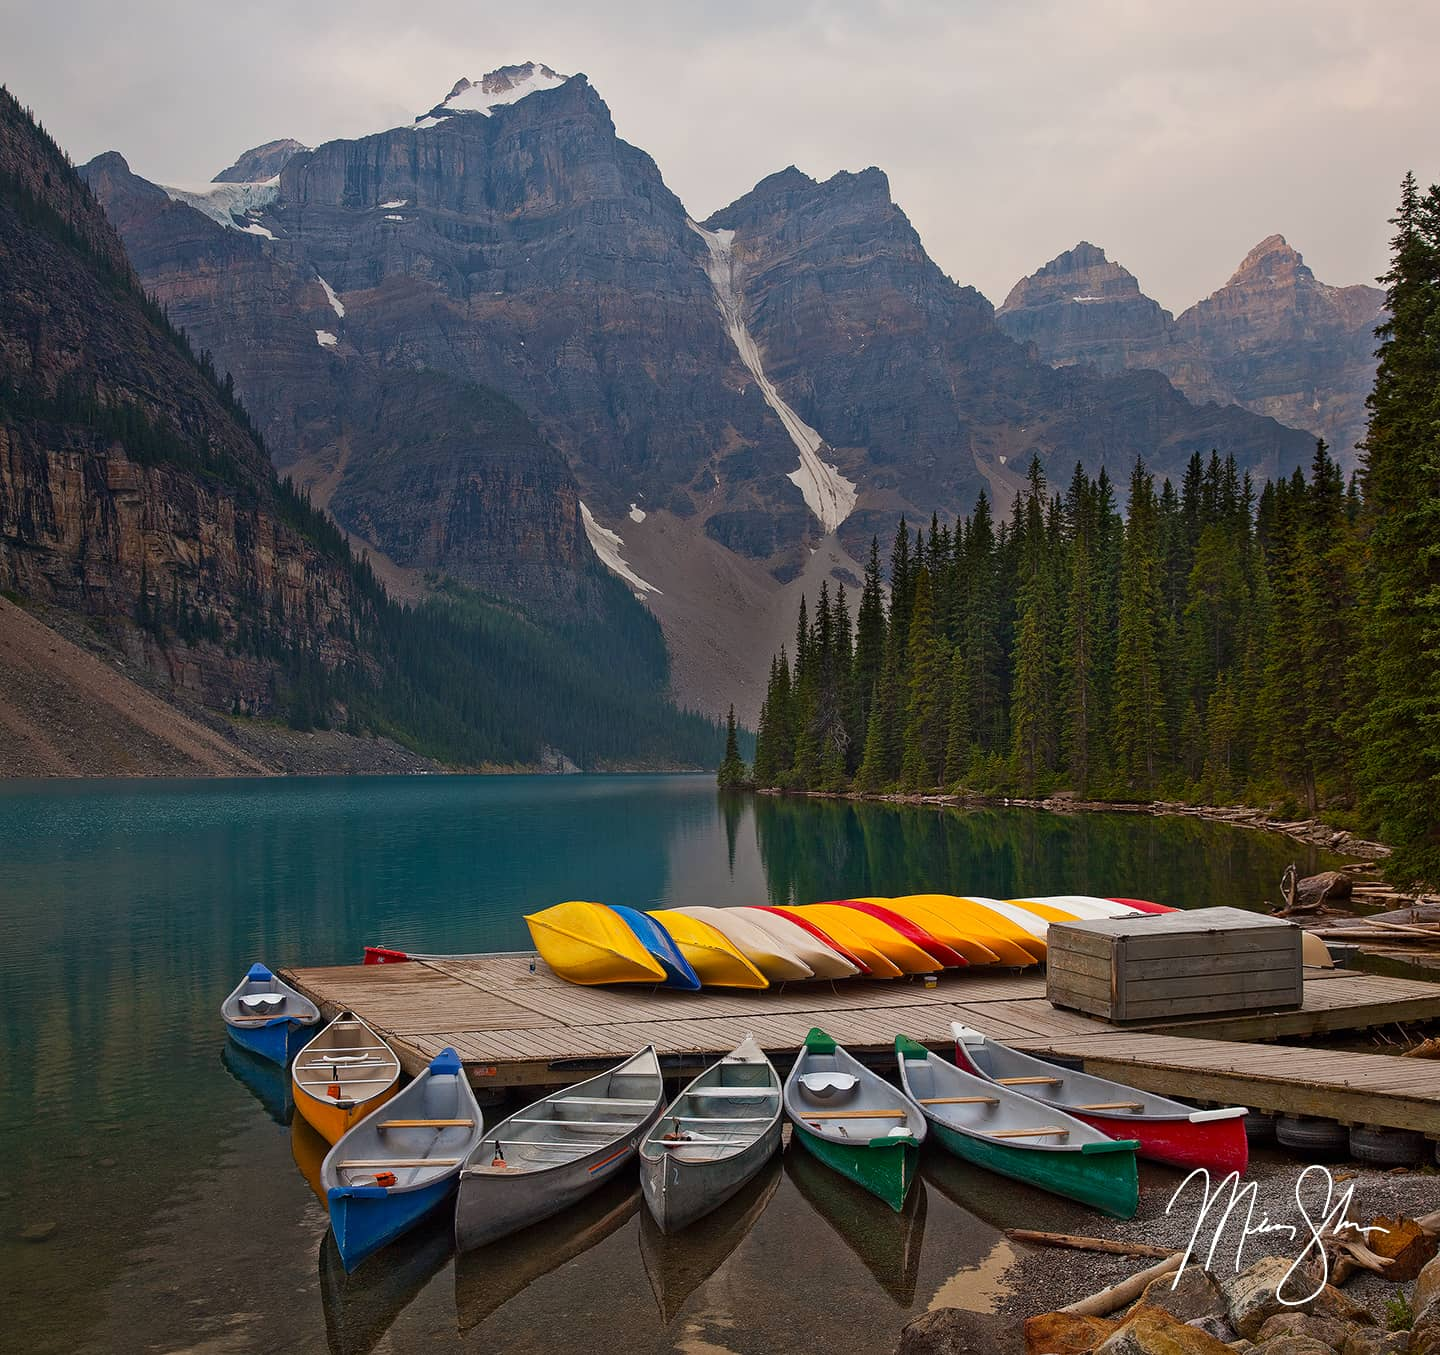 Canoes Of Moraine Lake - Moraine Lake, Banff National Park, Alberta, Canada